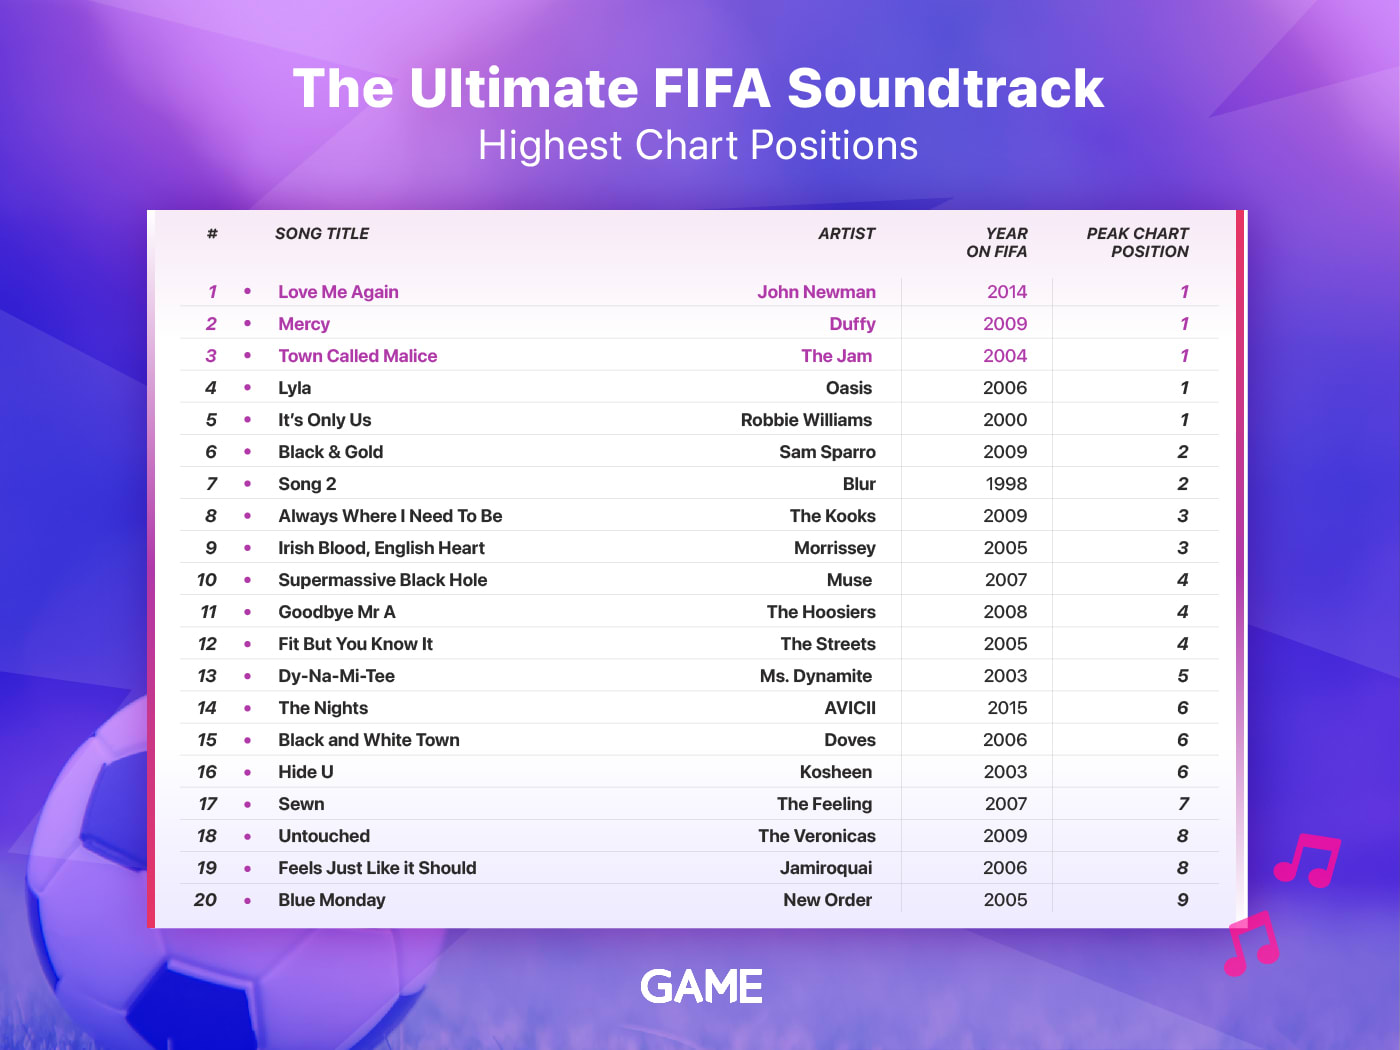 Highest Chart Positions of FIFA songs